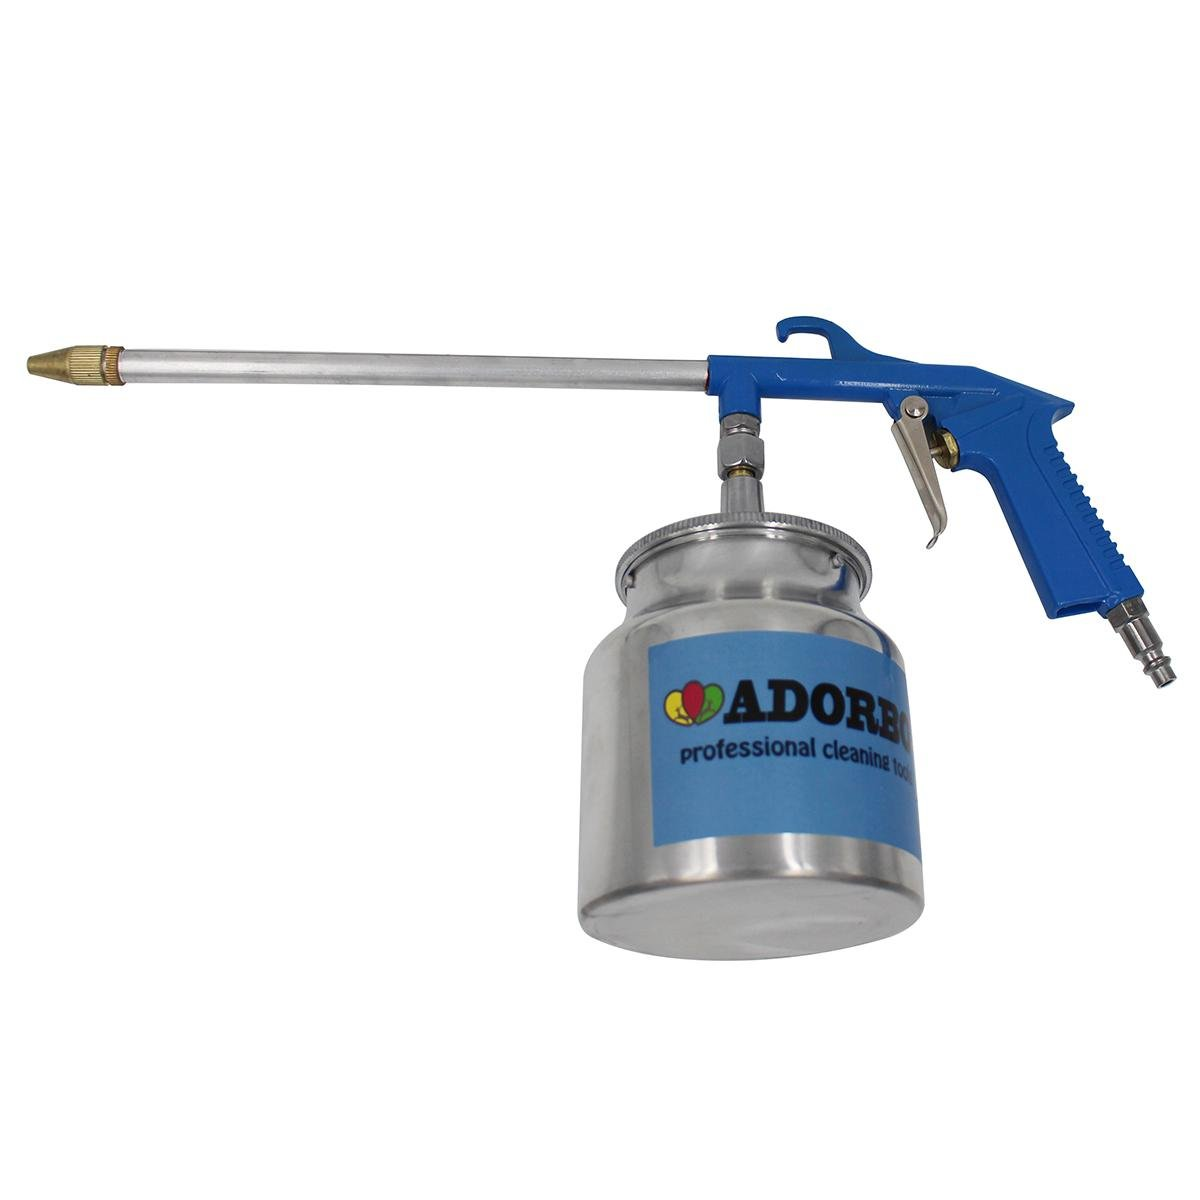 ADORBO Engine Cleaning Gun Solvent Air Sprayer Degreaser Automotive Tool